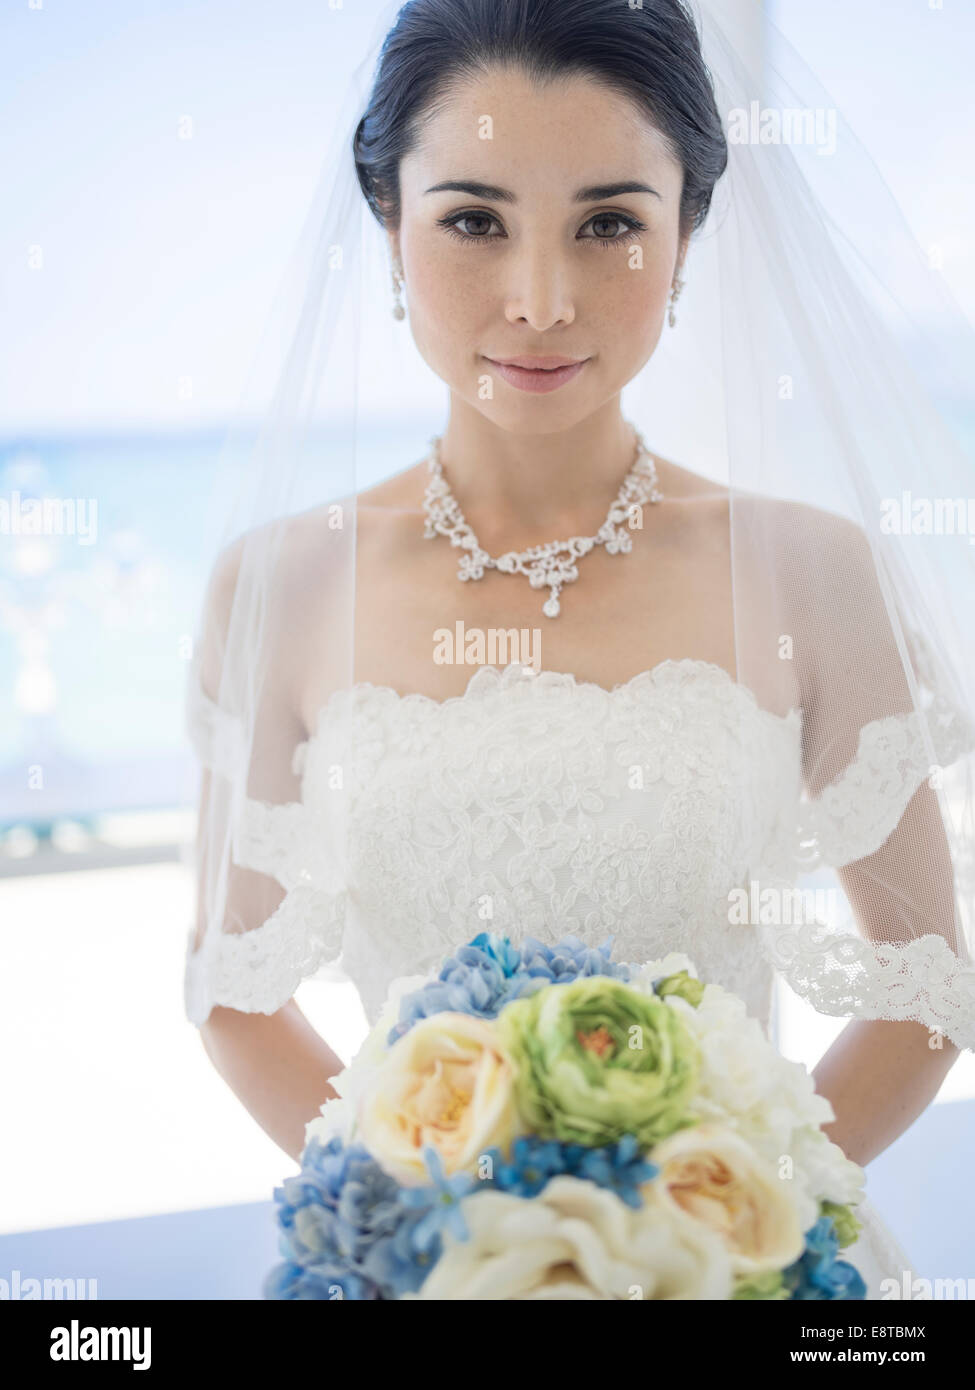 Mixed Race Asian American Bride In White Wedding Dress At